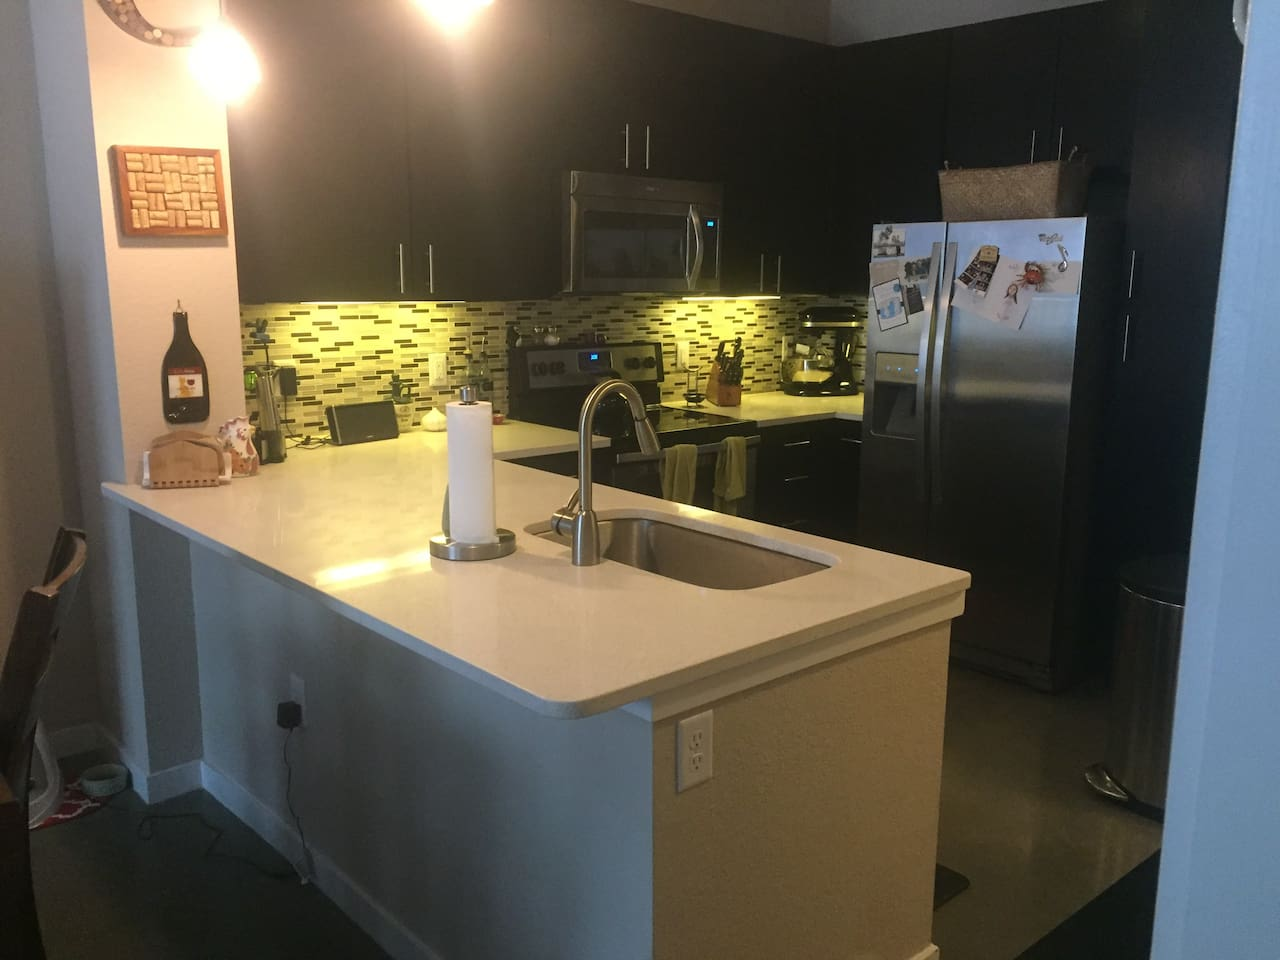 Full kitchen with dishwasher, microwave, and fridge